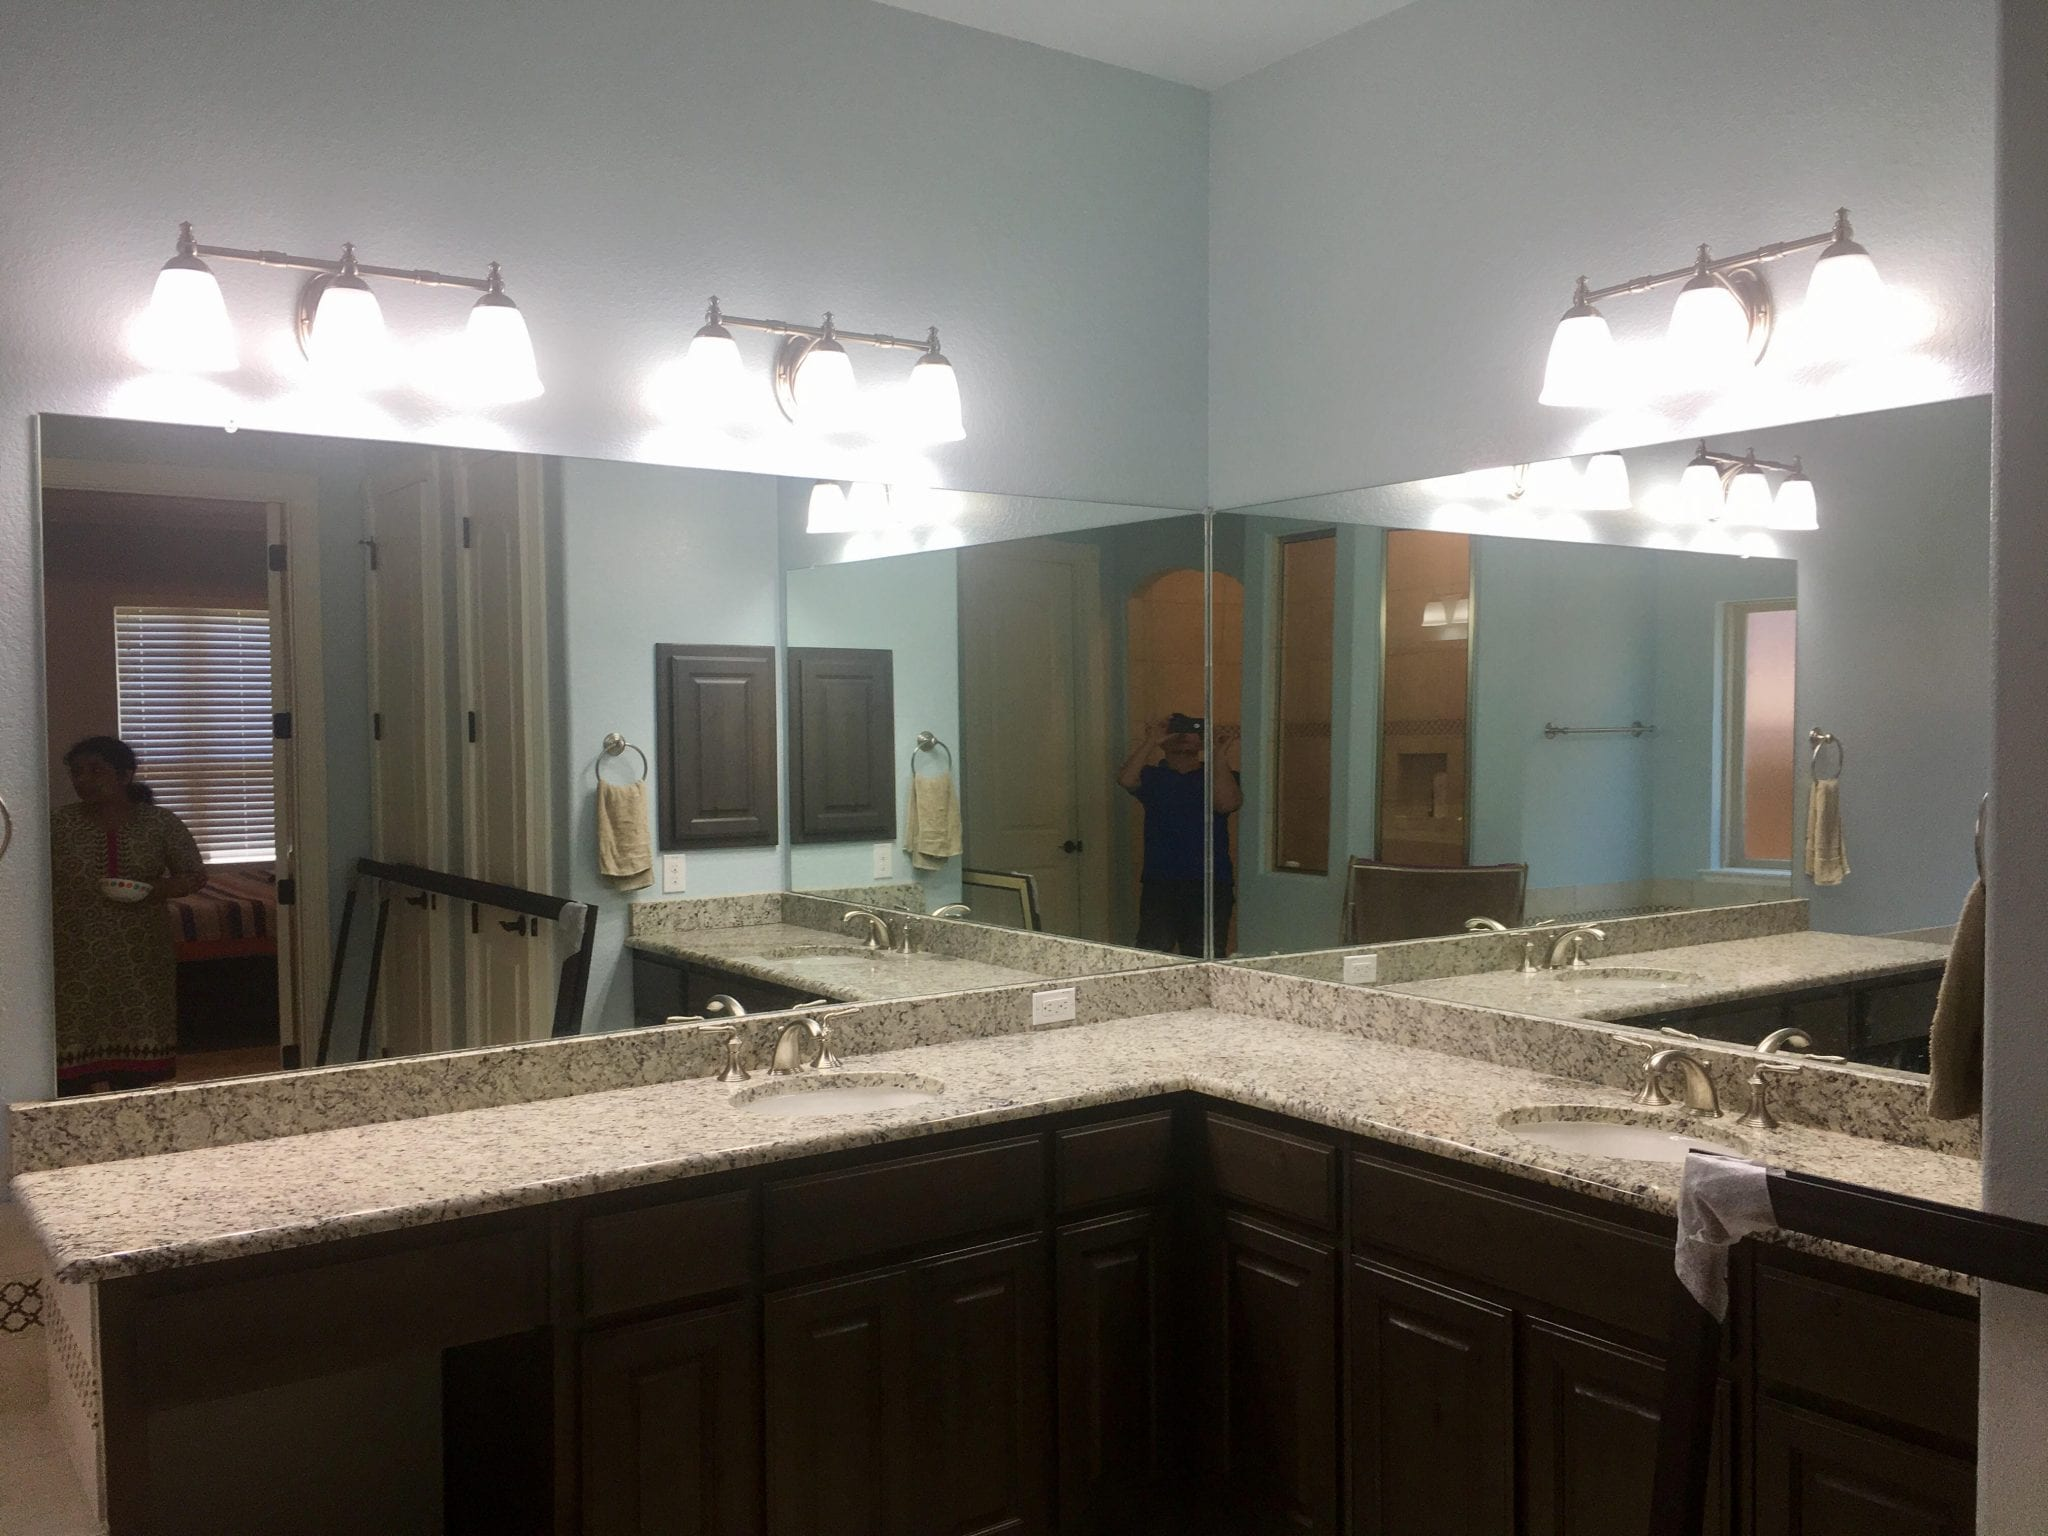 bathroom mirror and frame hanging